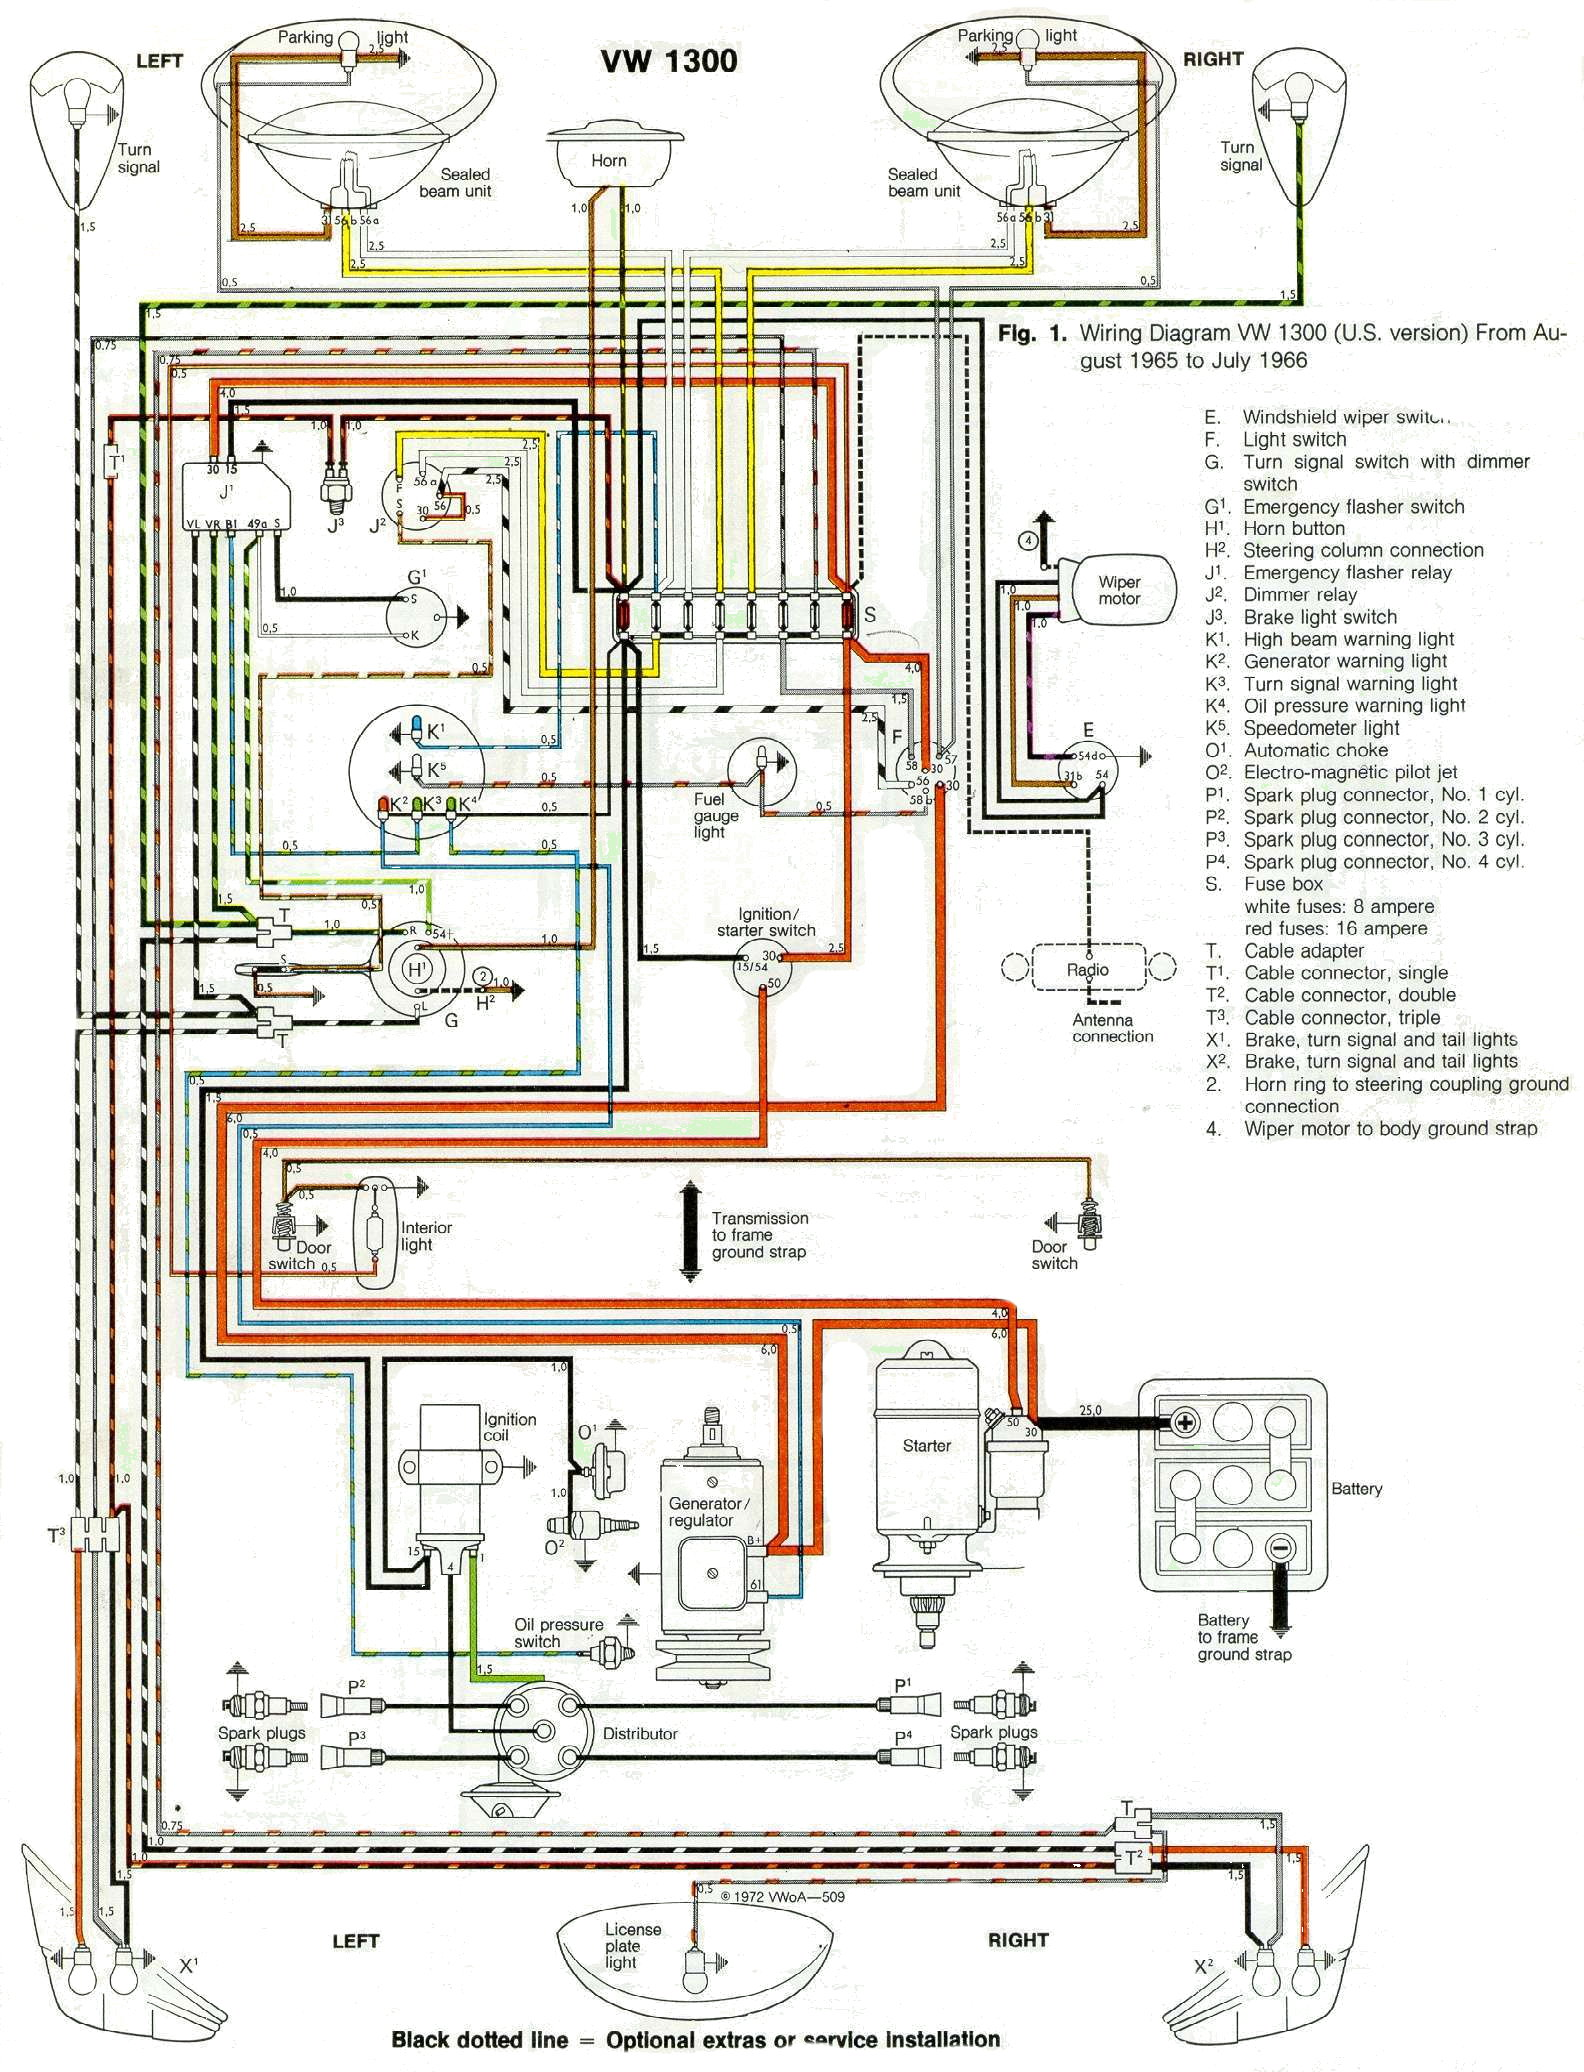 1966 Wiring 67 vw bus wiring harness 71 vw wiring harness \u2022 wiring diagrams Wiring Harness Diagram at gsmportal.co